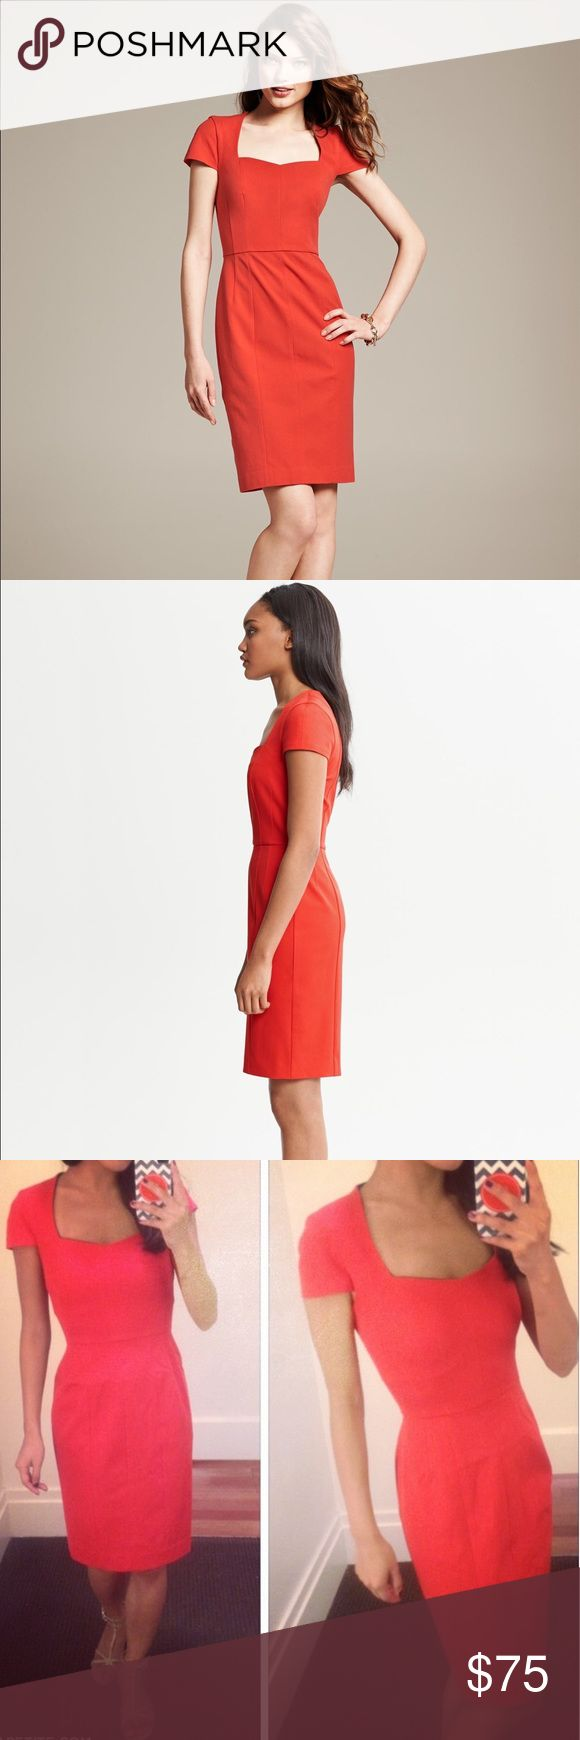 Banana Republic Red Sloan Sheath Dress Stylish and polished. Very figure flattering, especially for petite women. Pair this with a statement necklace or animal print belt and oh la la! Never worn J. Crew Dresses